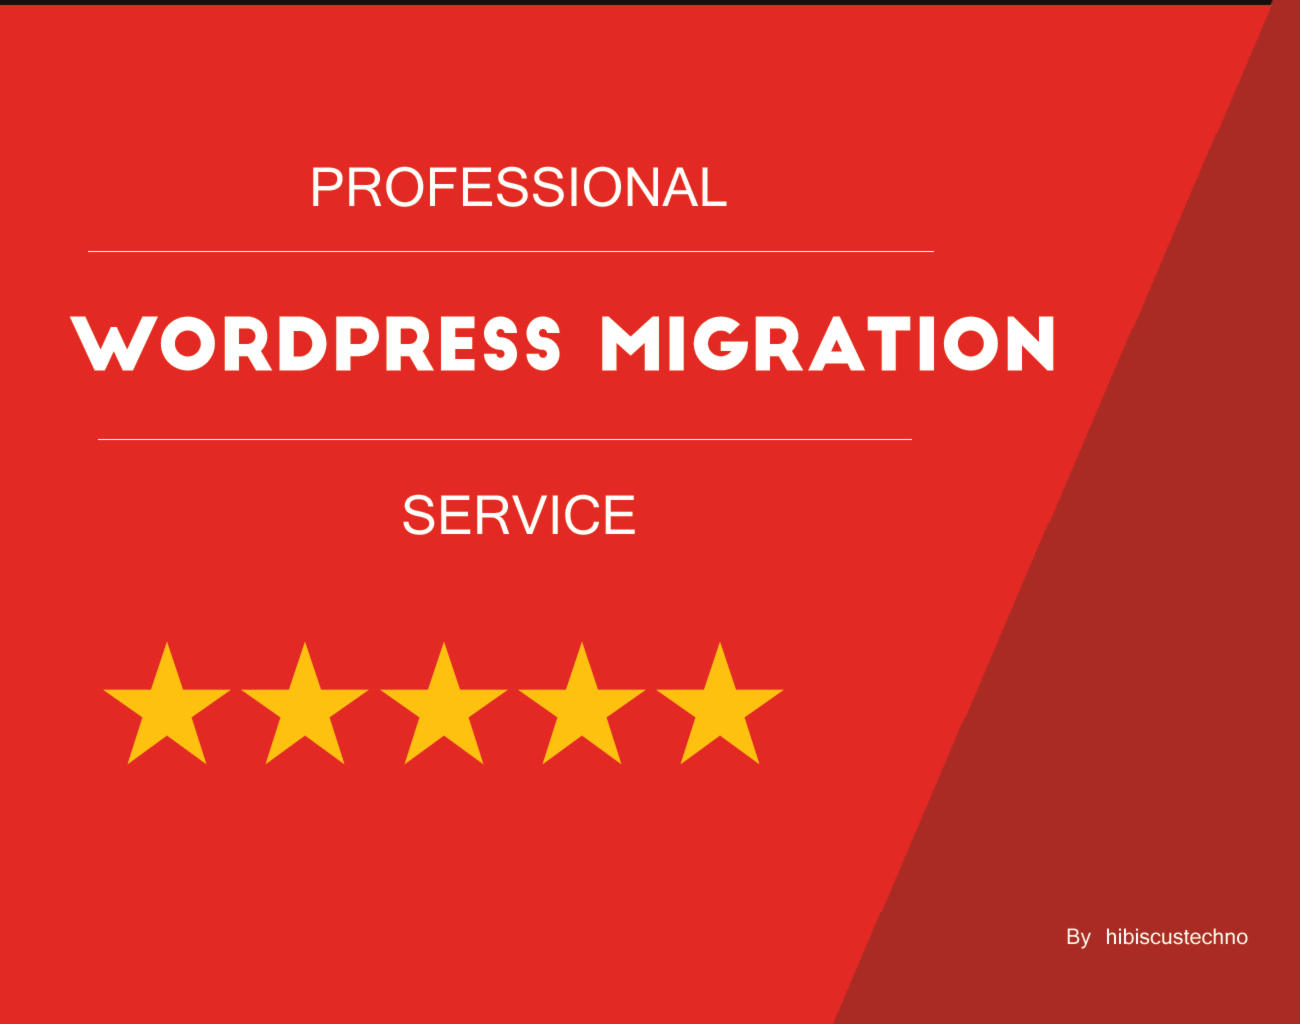 WordPress Migration by hibiscustechno - 107963